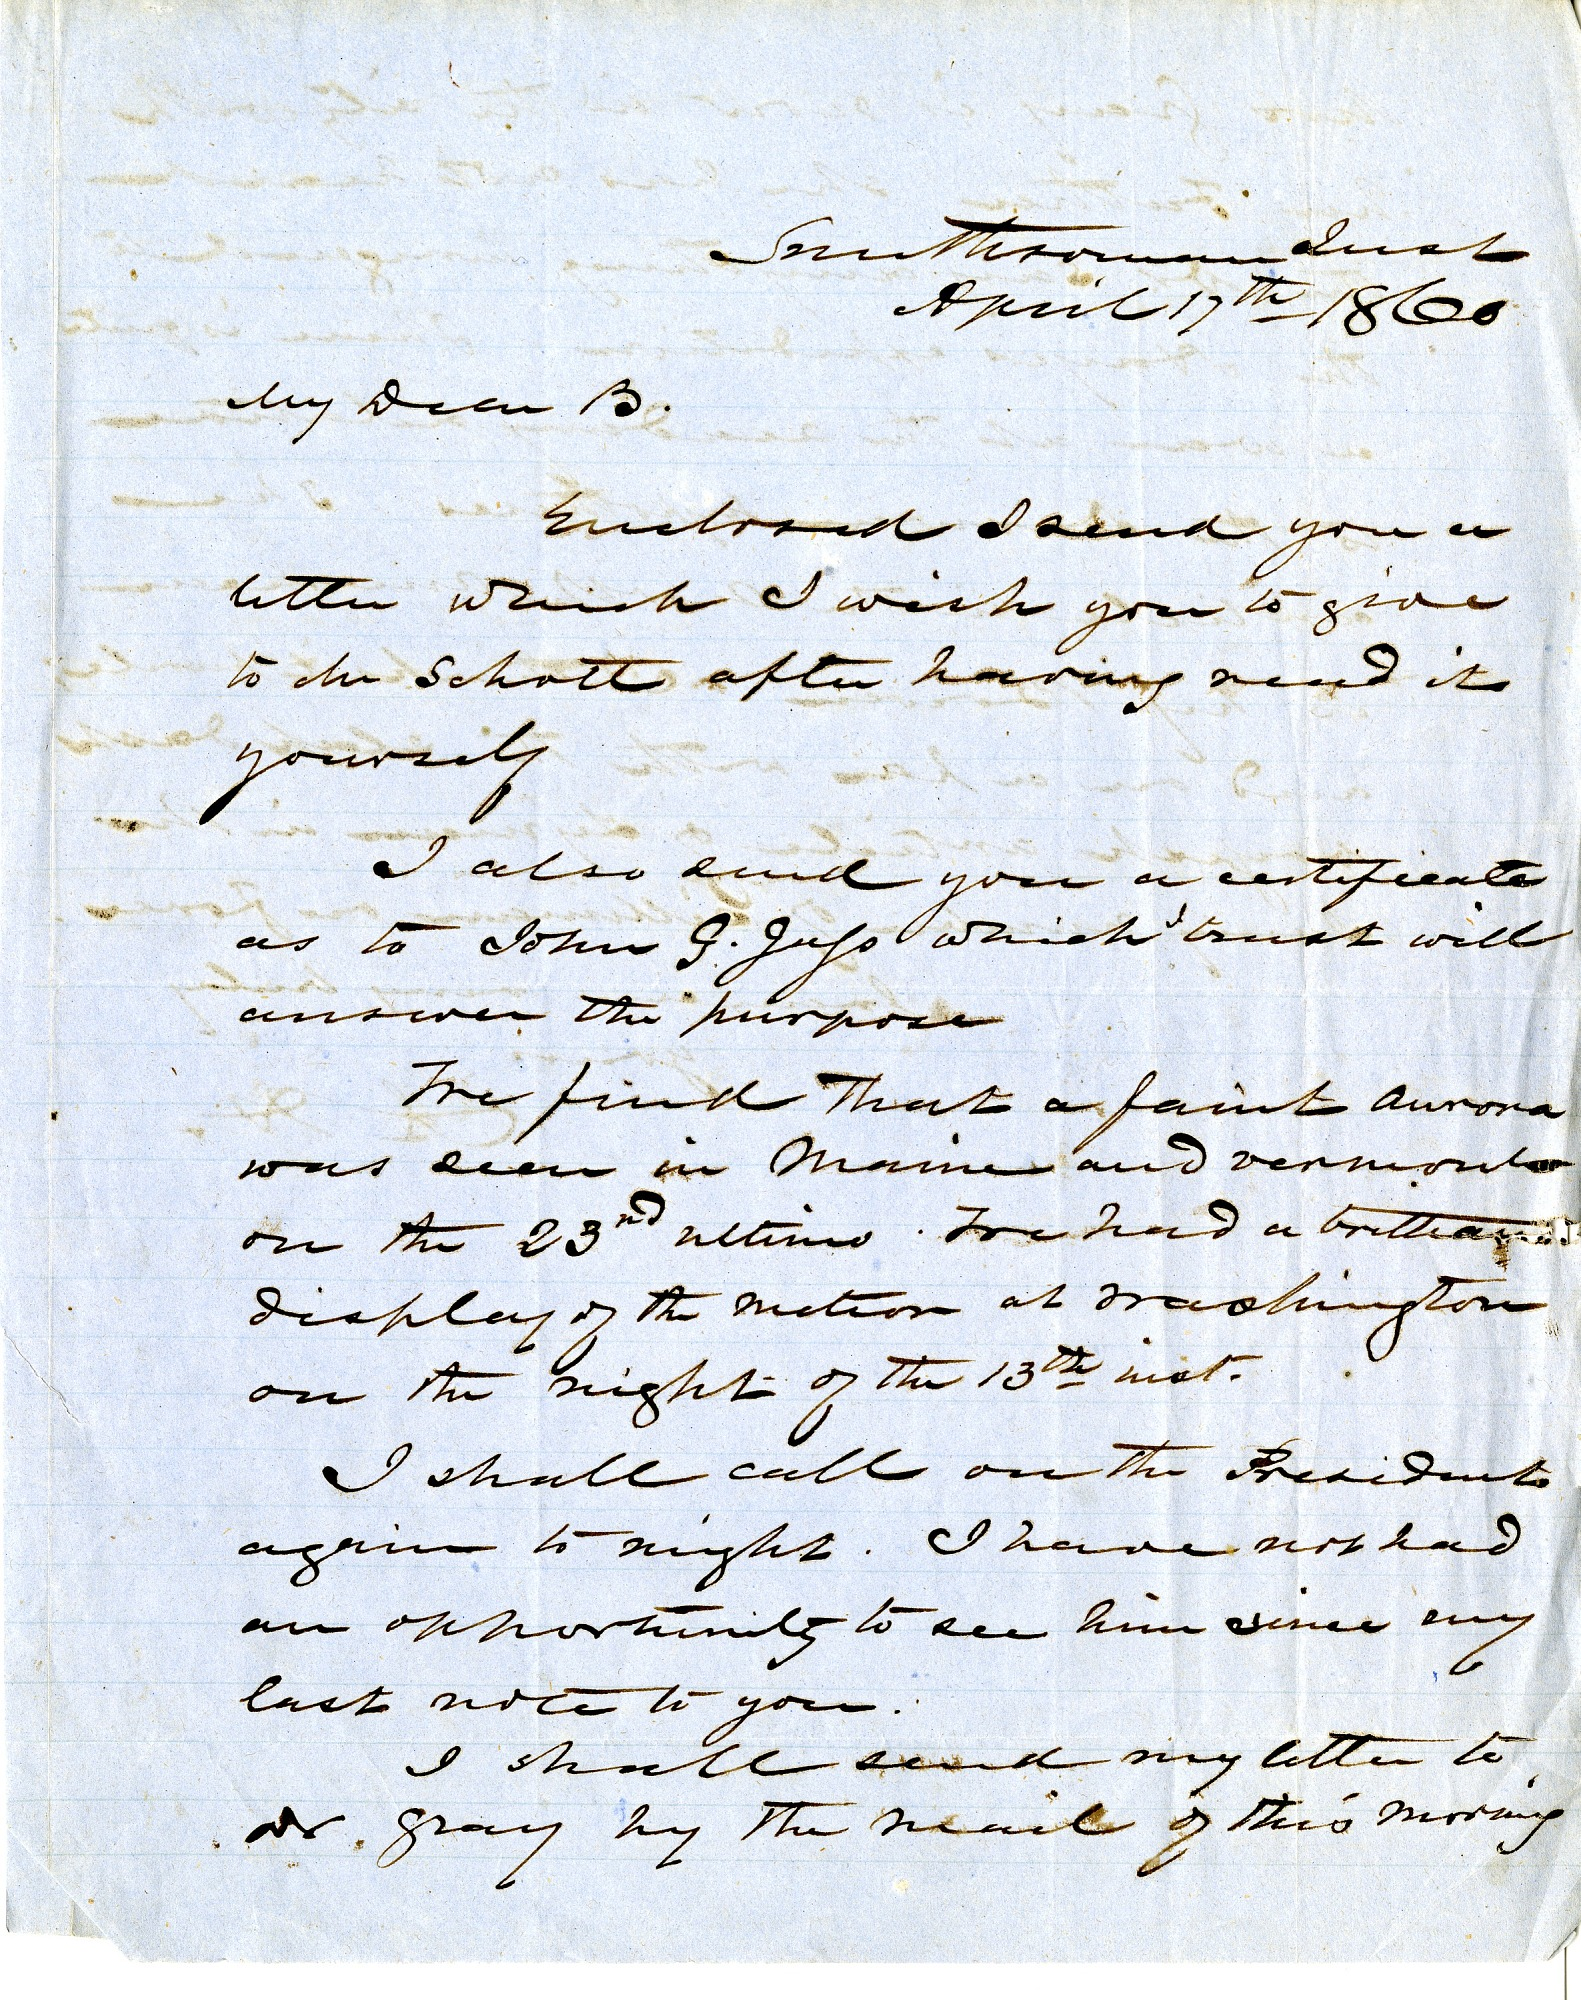 Alexander Dallas Bache Letter, April 17, 1860